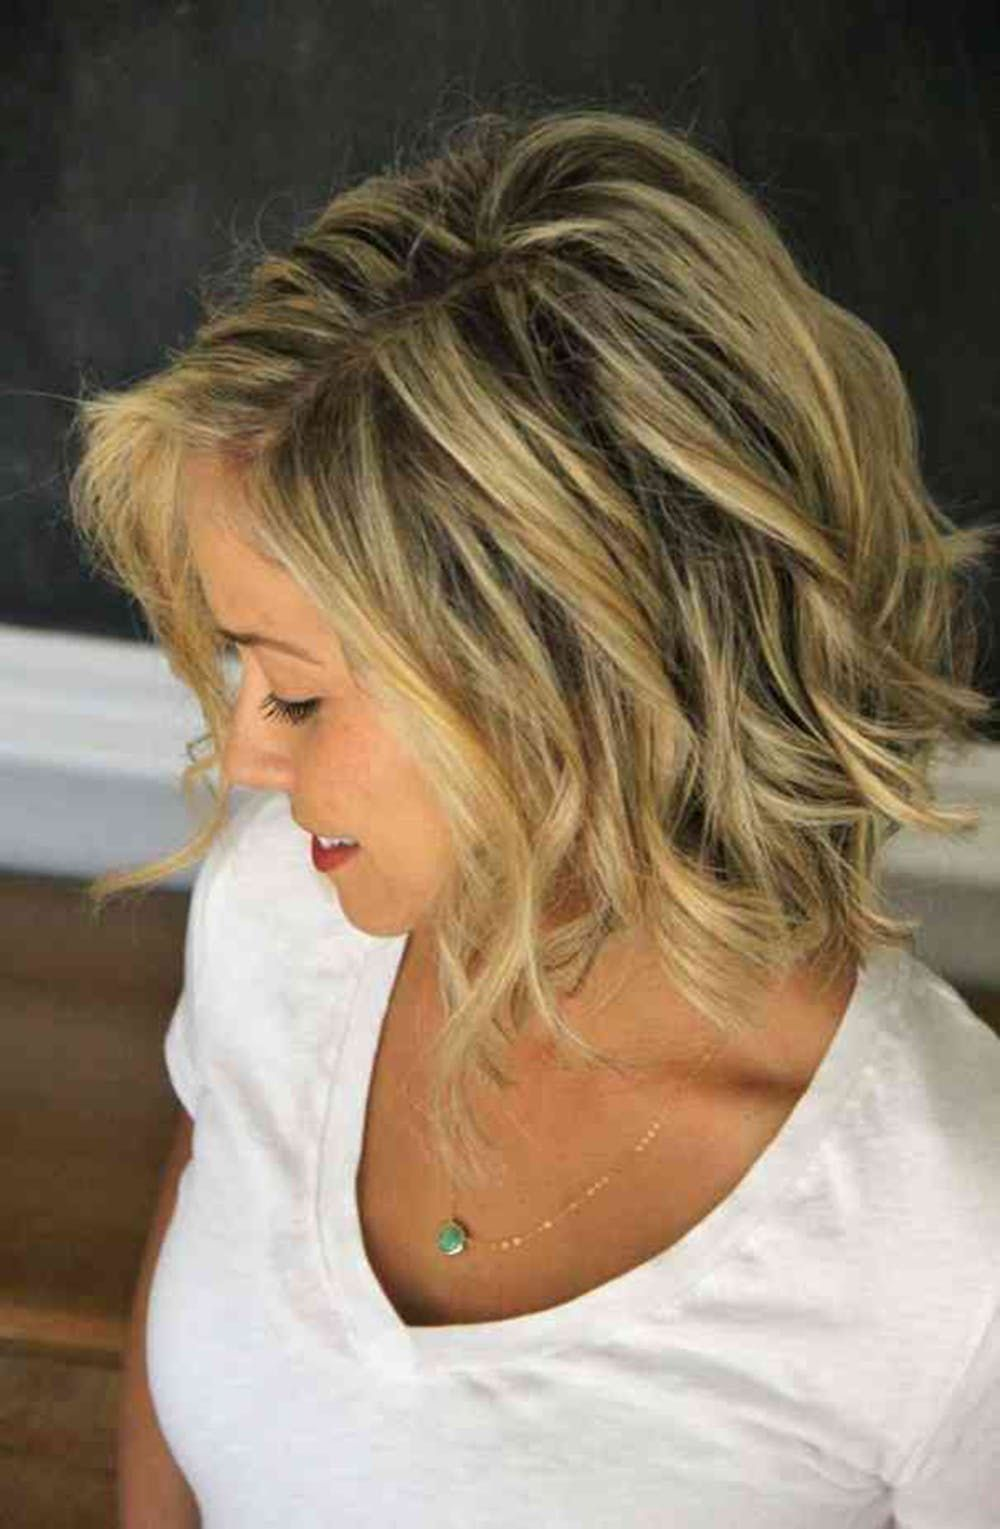 31 Bob And Lob Hairstyles That Will Make You Want Short Hair